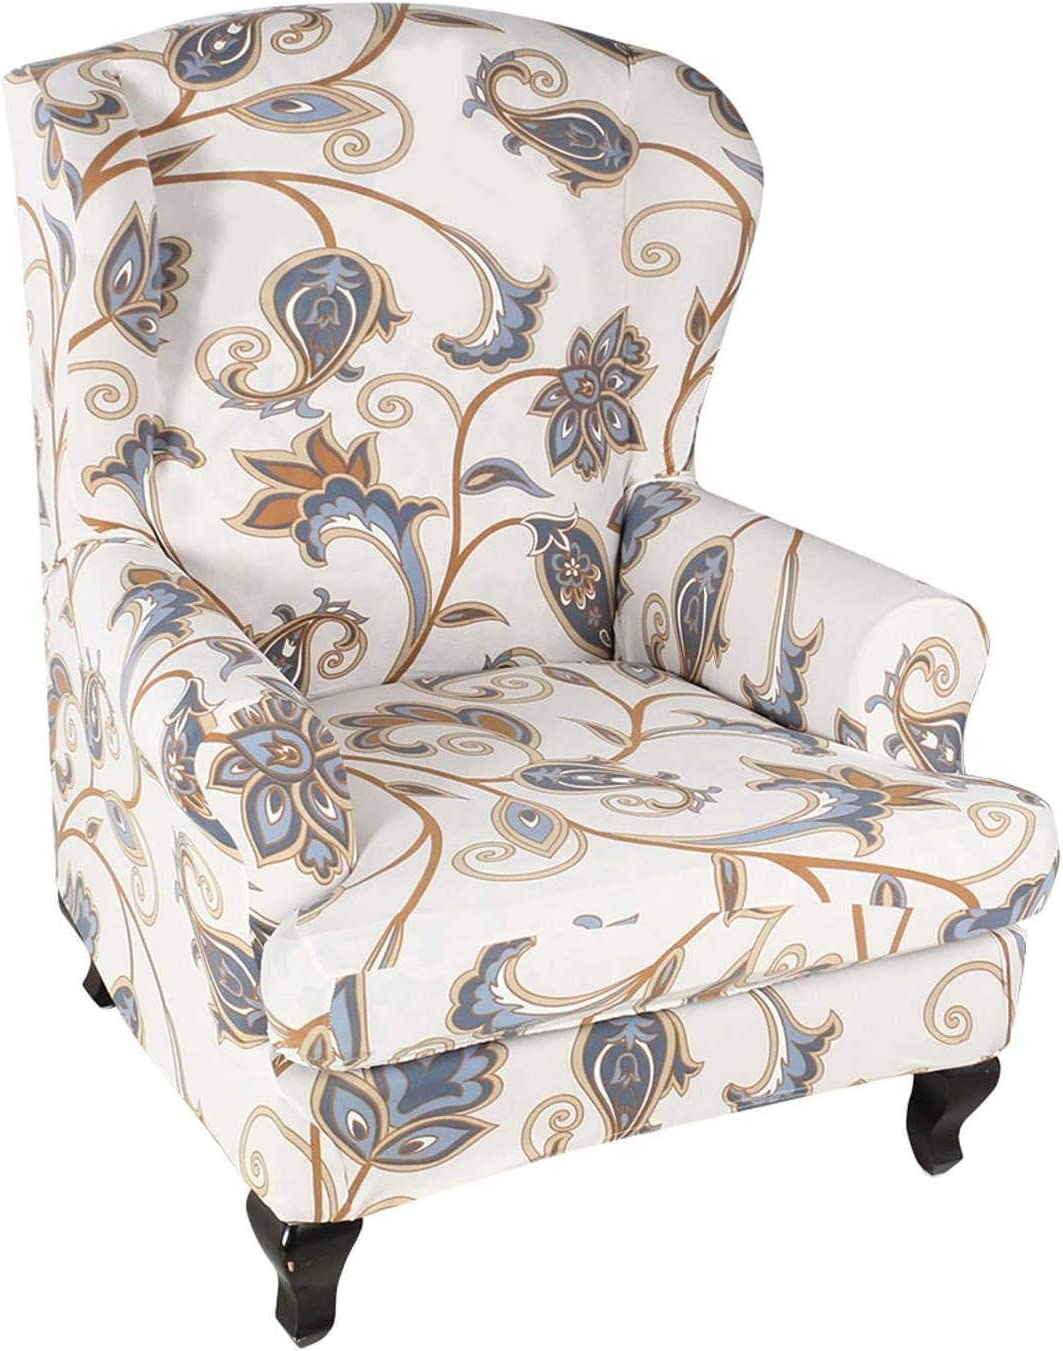 Stretch Wingback Chair Cover,2 Pieces Printed Wing Chair Cover Universal Washable Wingback Chair Slipcover Spandex Furniture Protector for Living Room Decoration,Stretch Wingback Chair Cover